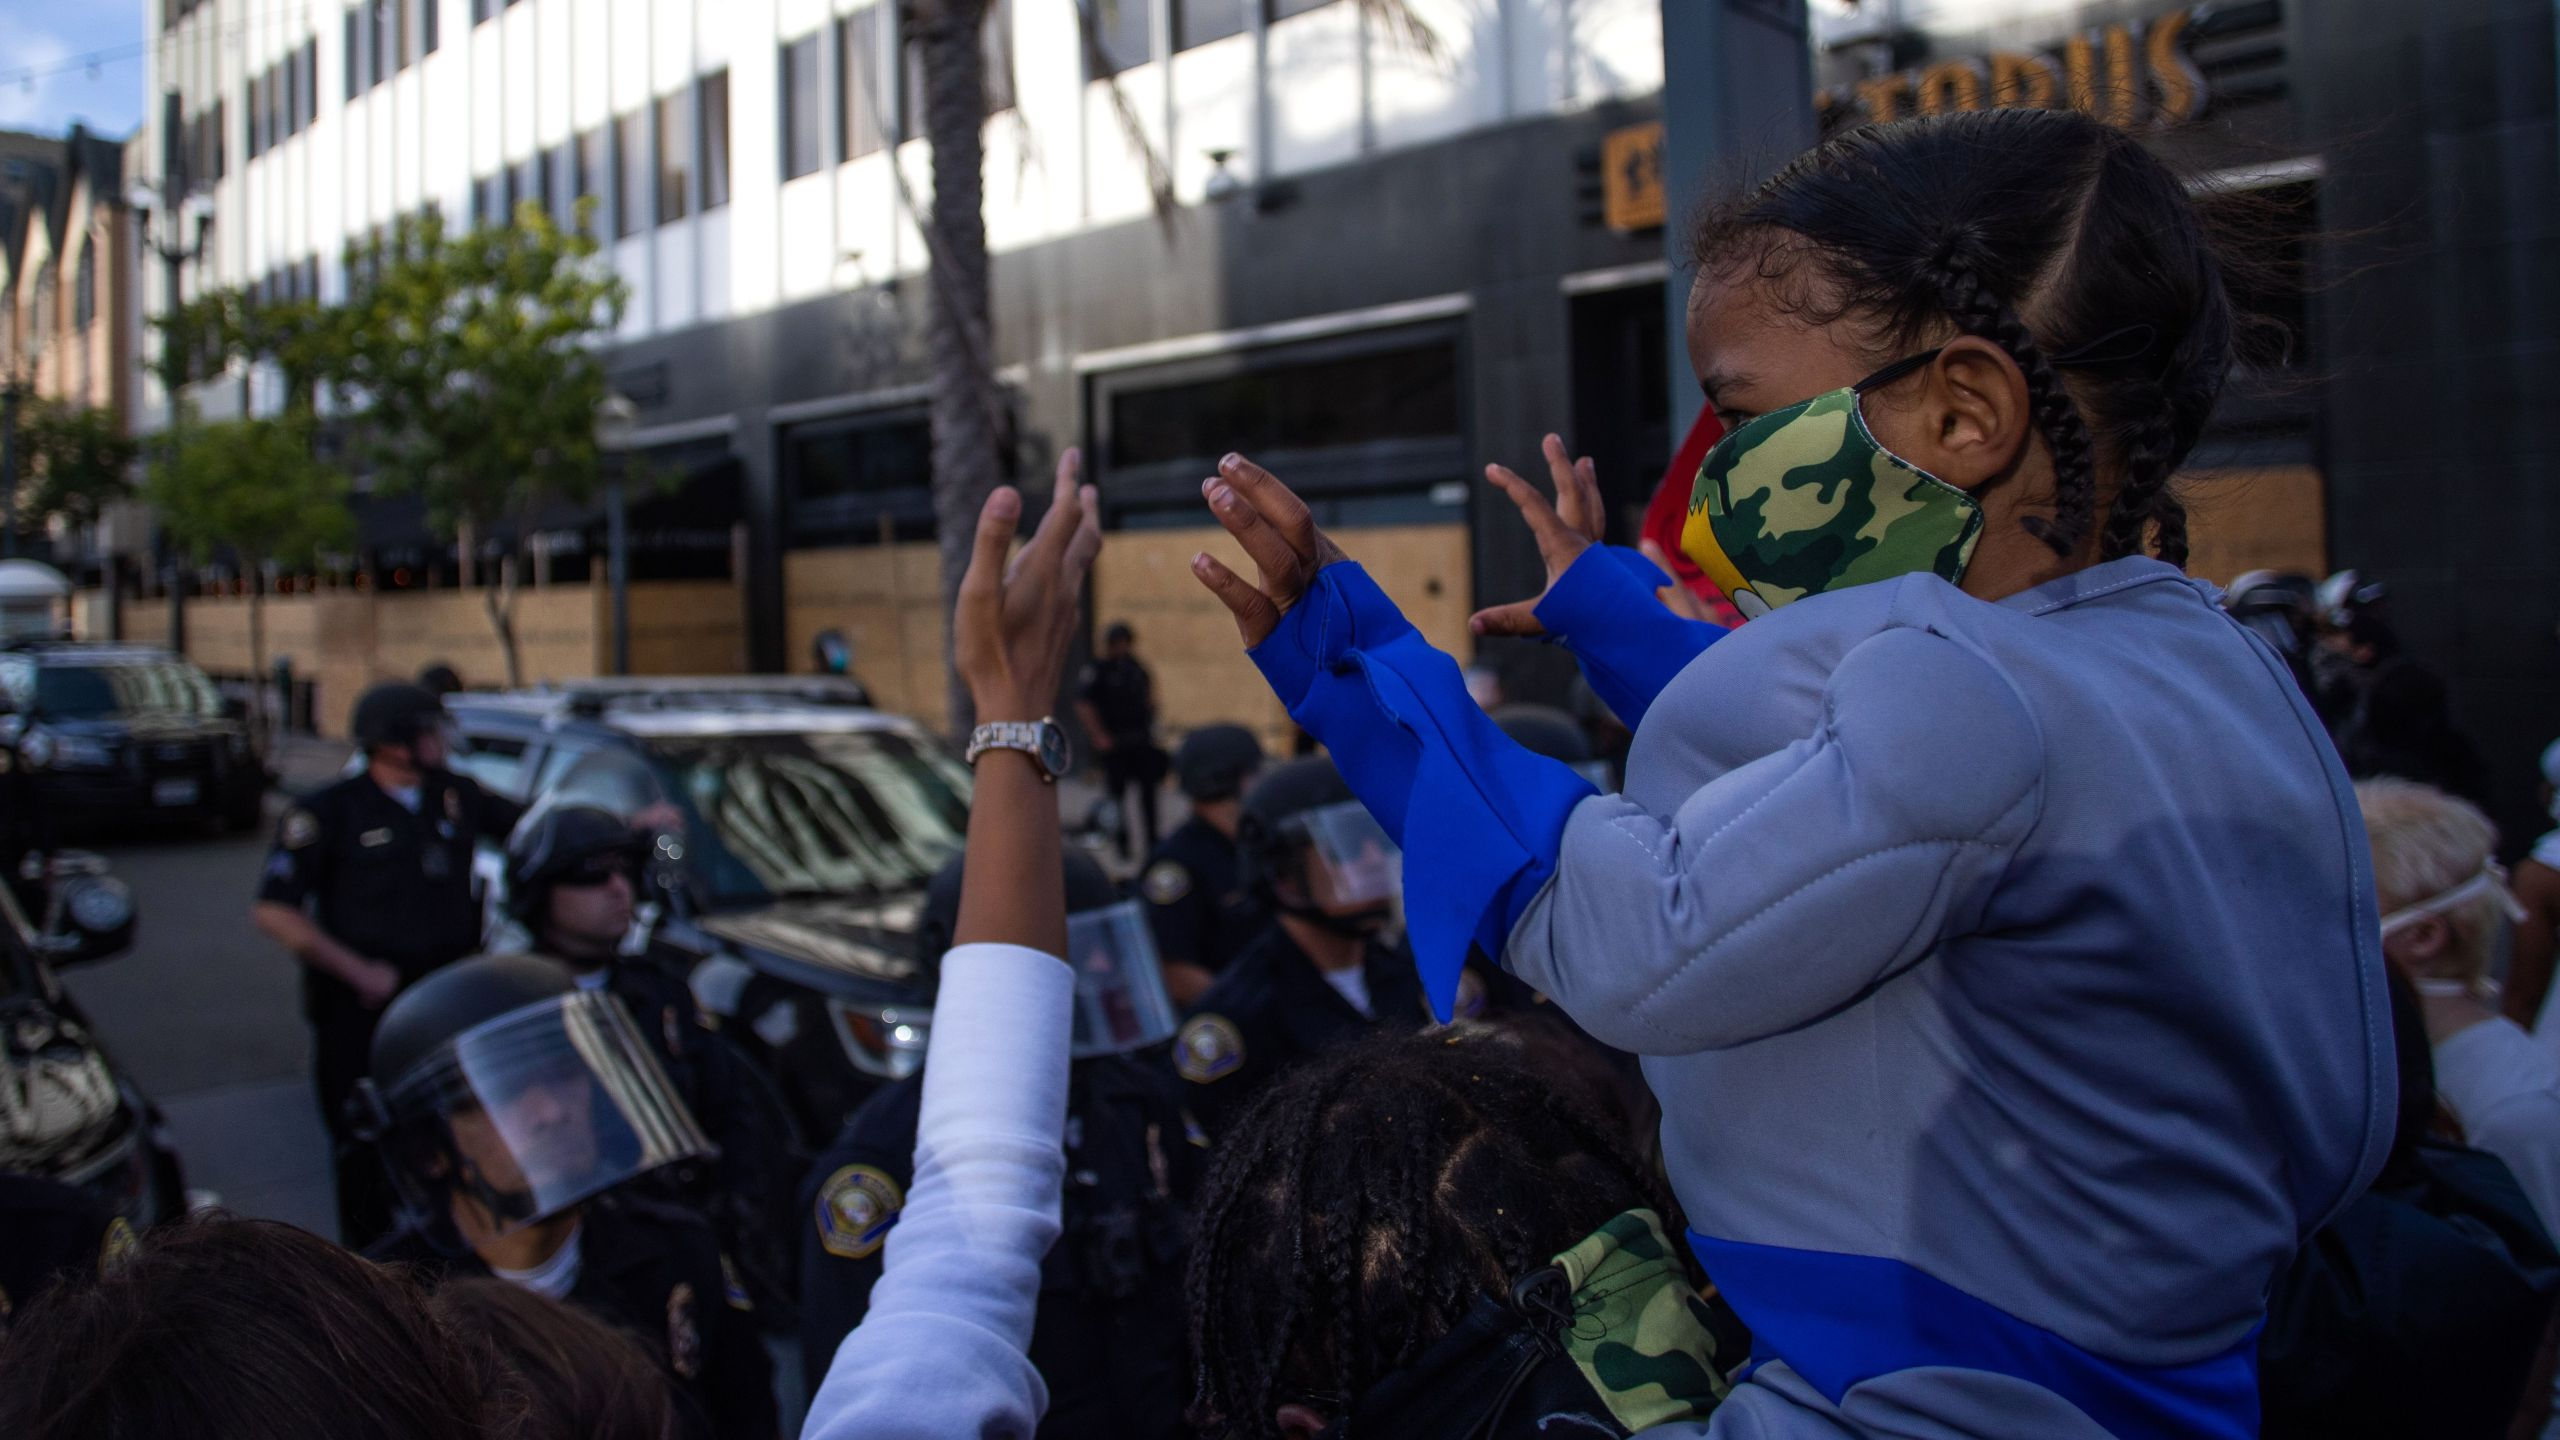 A child holds up his hands in front of a row of police officers in downtown Long Beach on May 31, 2020 during a protest against the death of George Floyd. (APU GOMES/AFP via Getty Images)